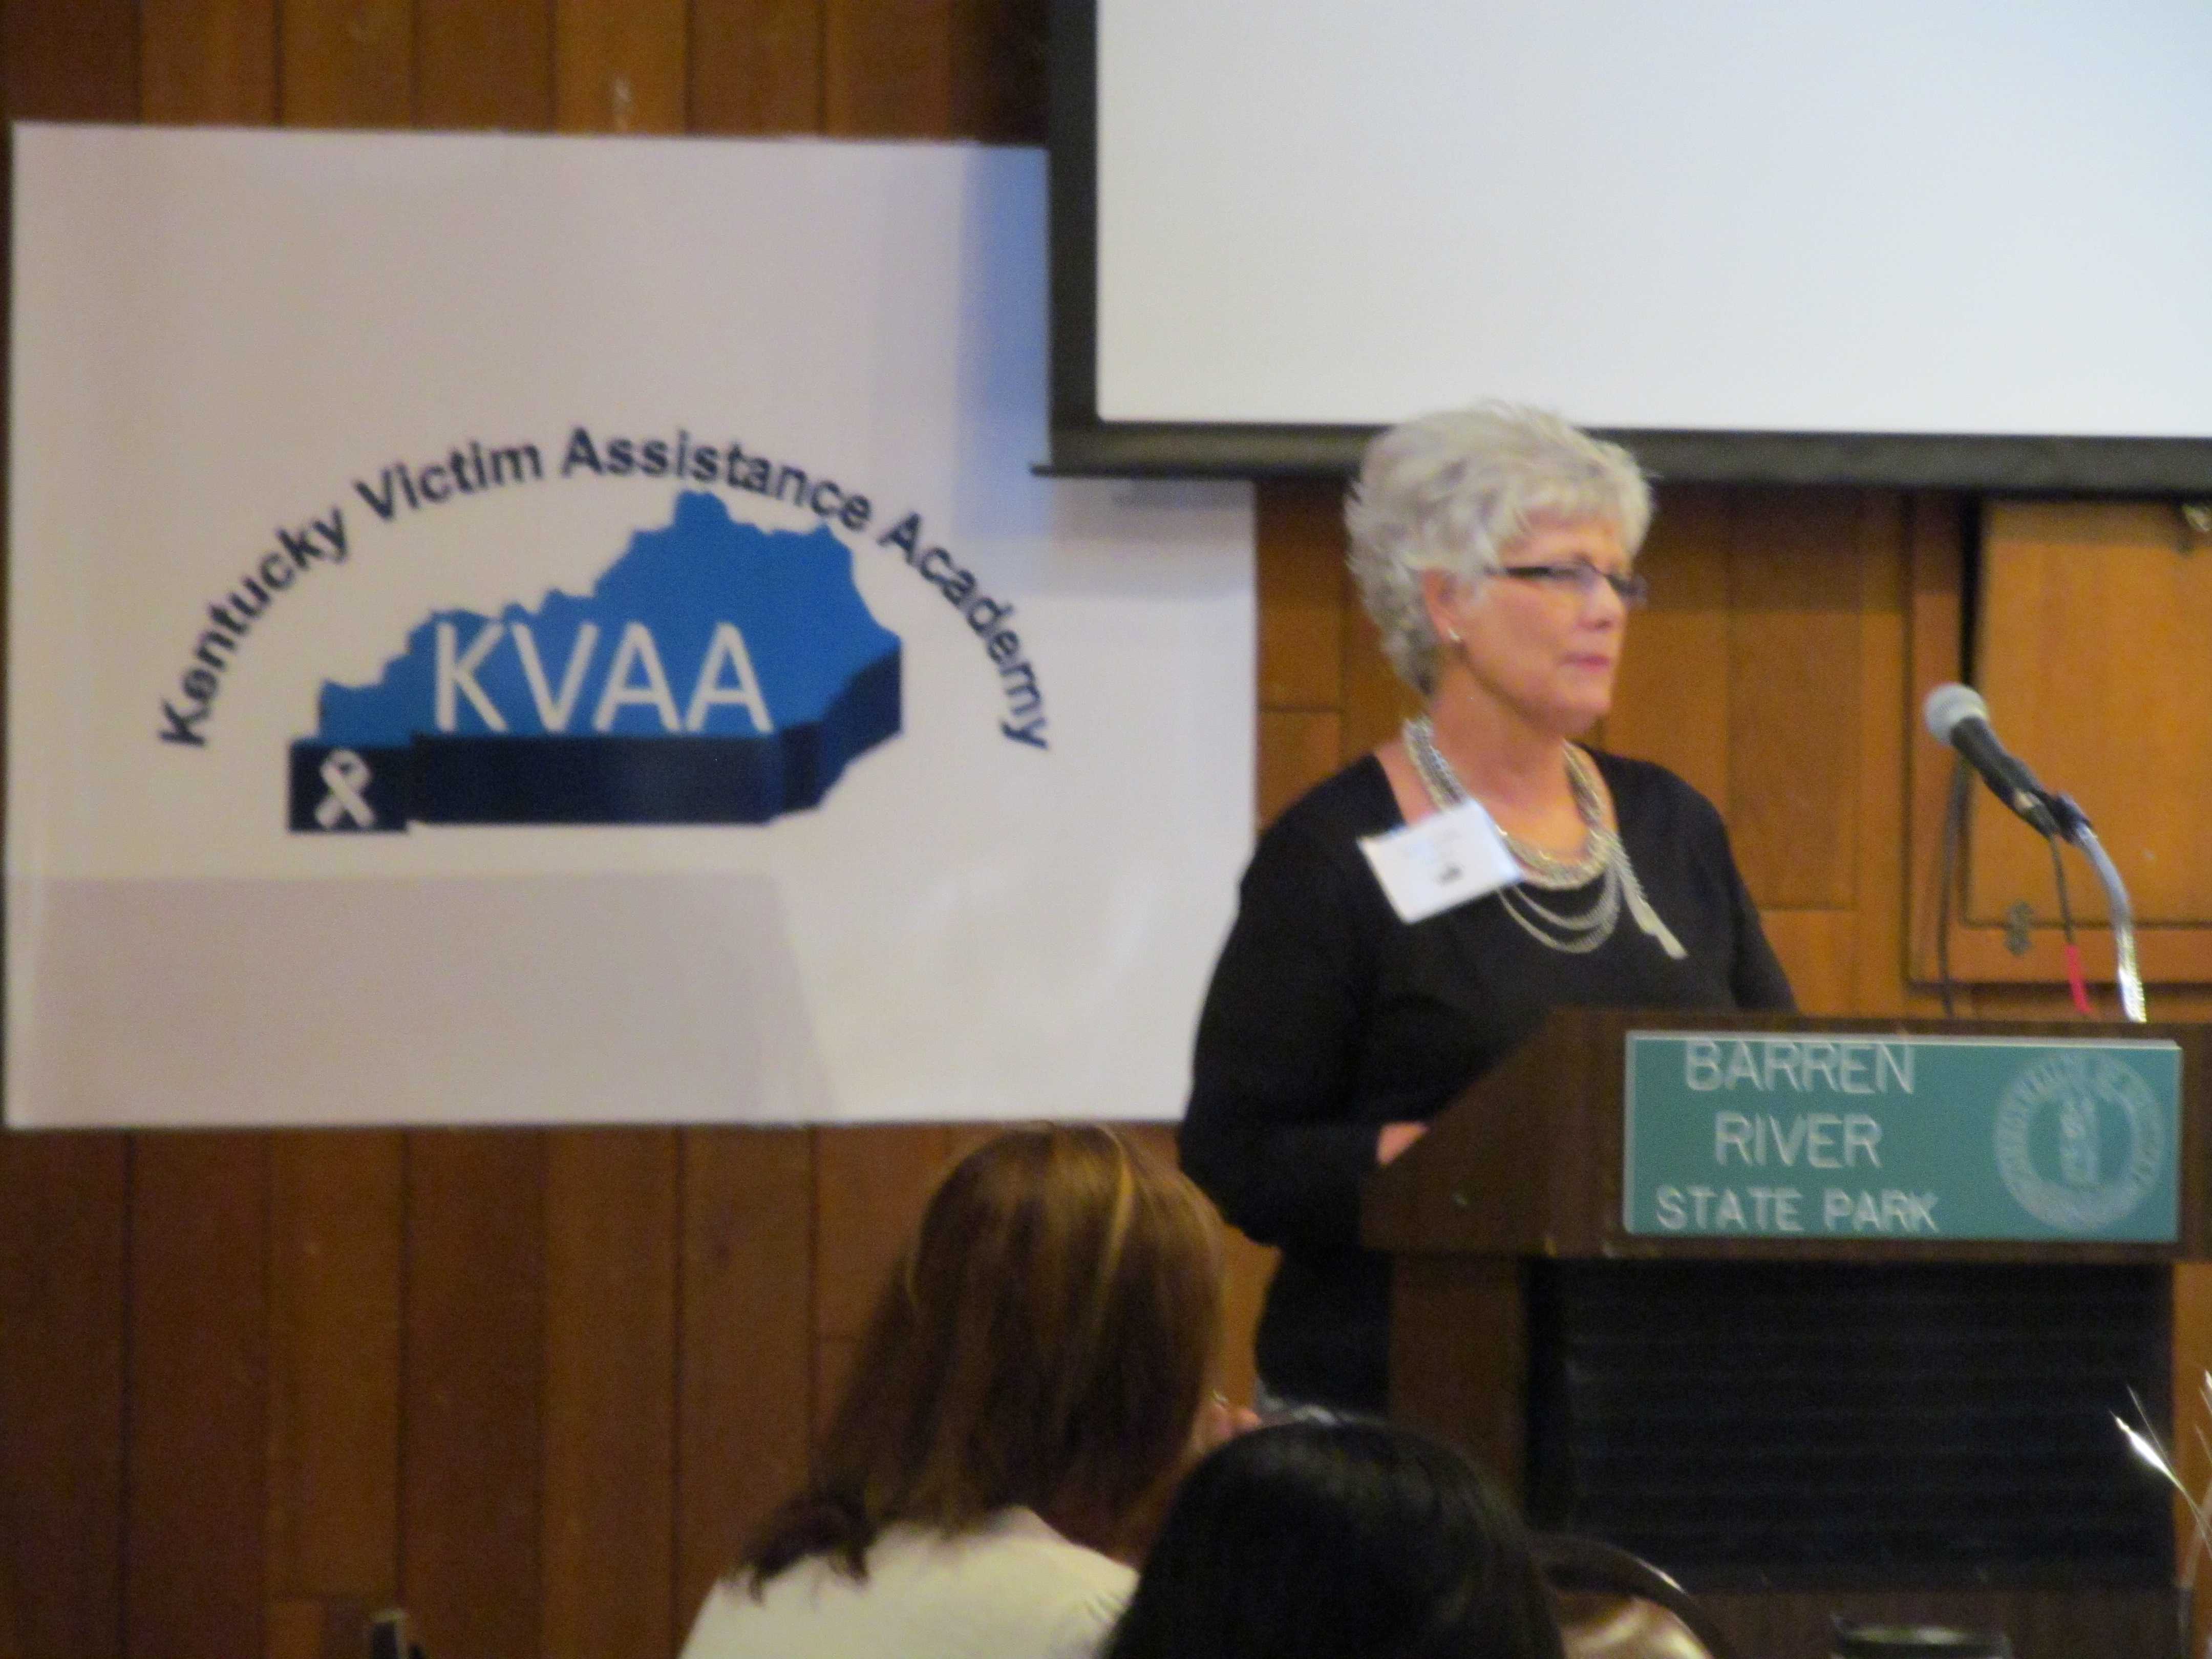 Karolyn Nunnallee, keynote speaker and former President of MADD